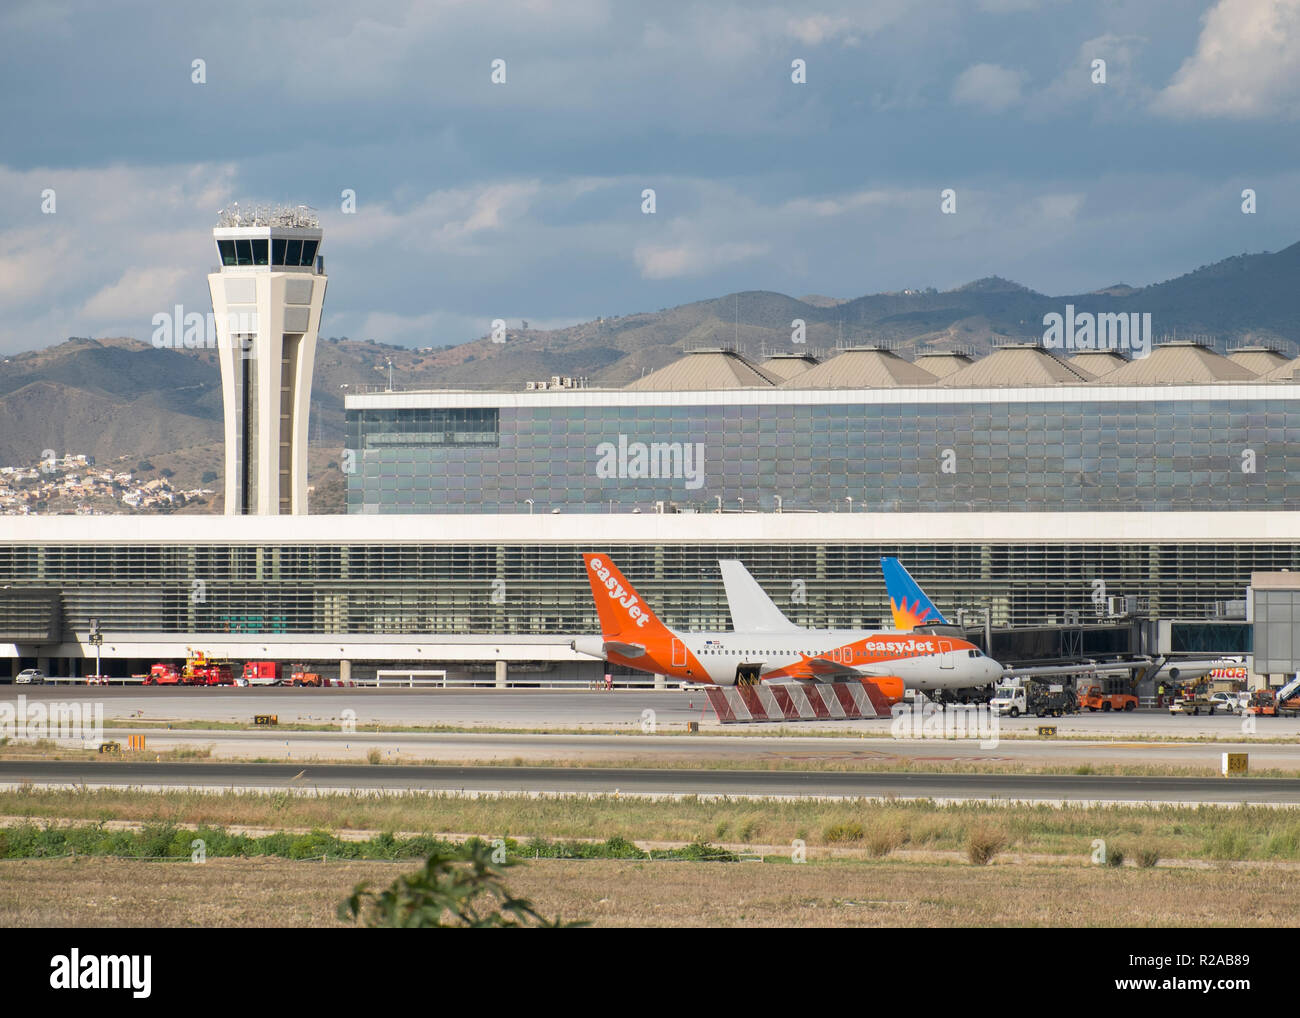 Málaga airport terminal 3 (opened in march 2010) and the control tower. - Stock Image